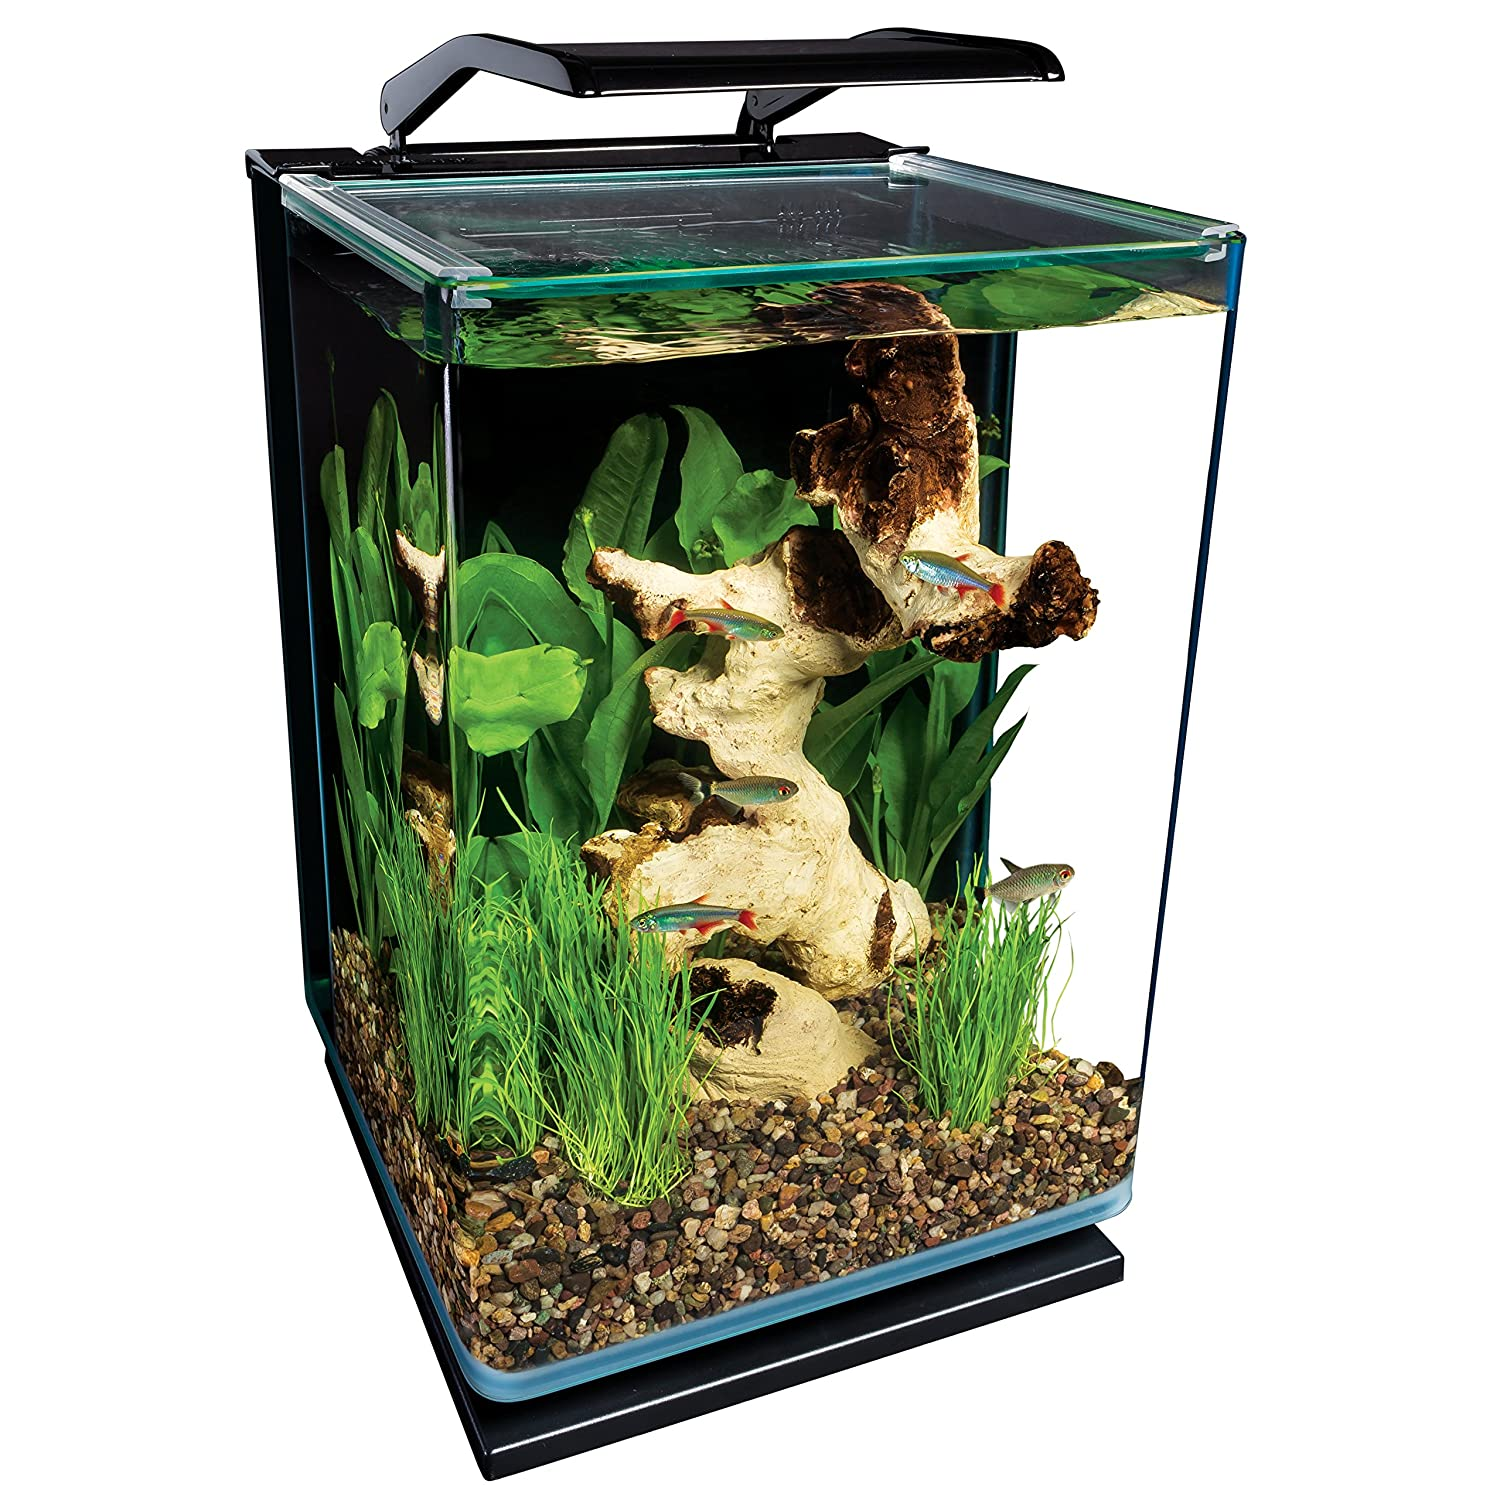 Best 5 gallon betta tank try samurai fighting fish betta for 2 gallon betta fish tank